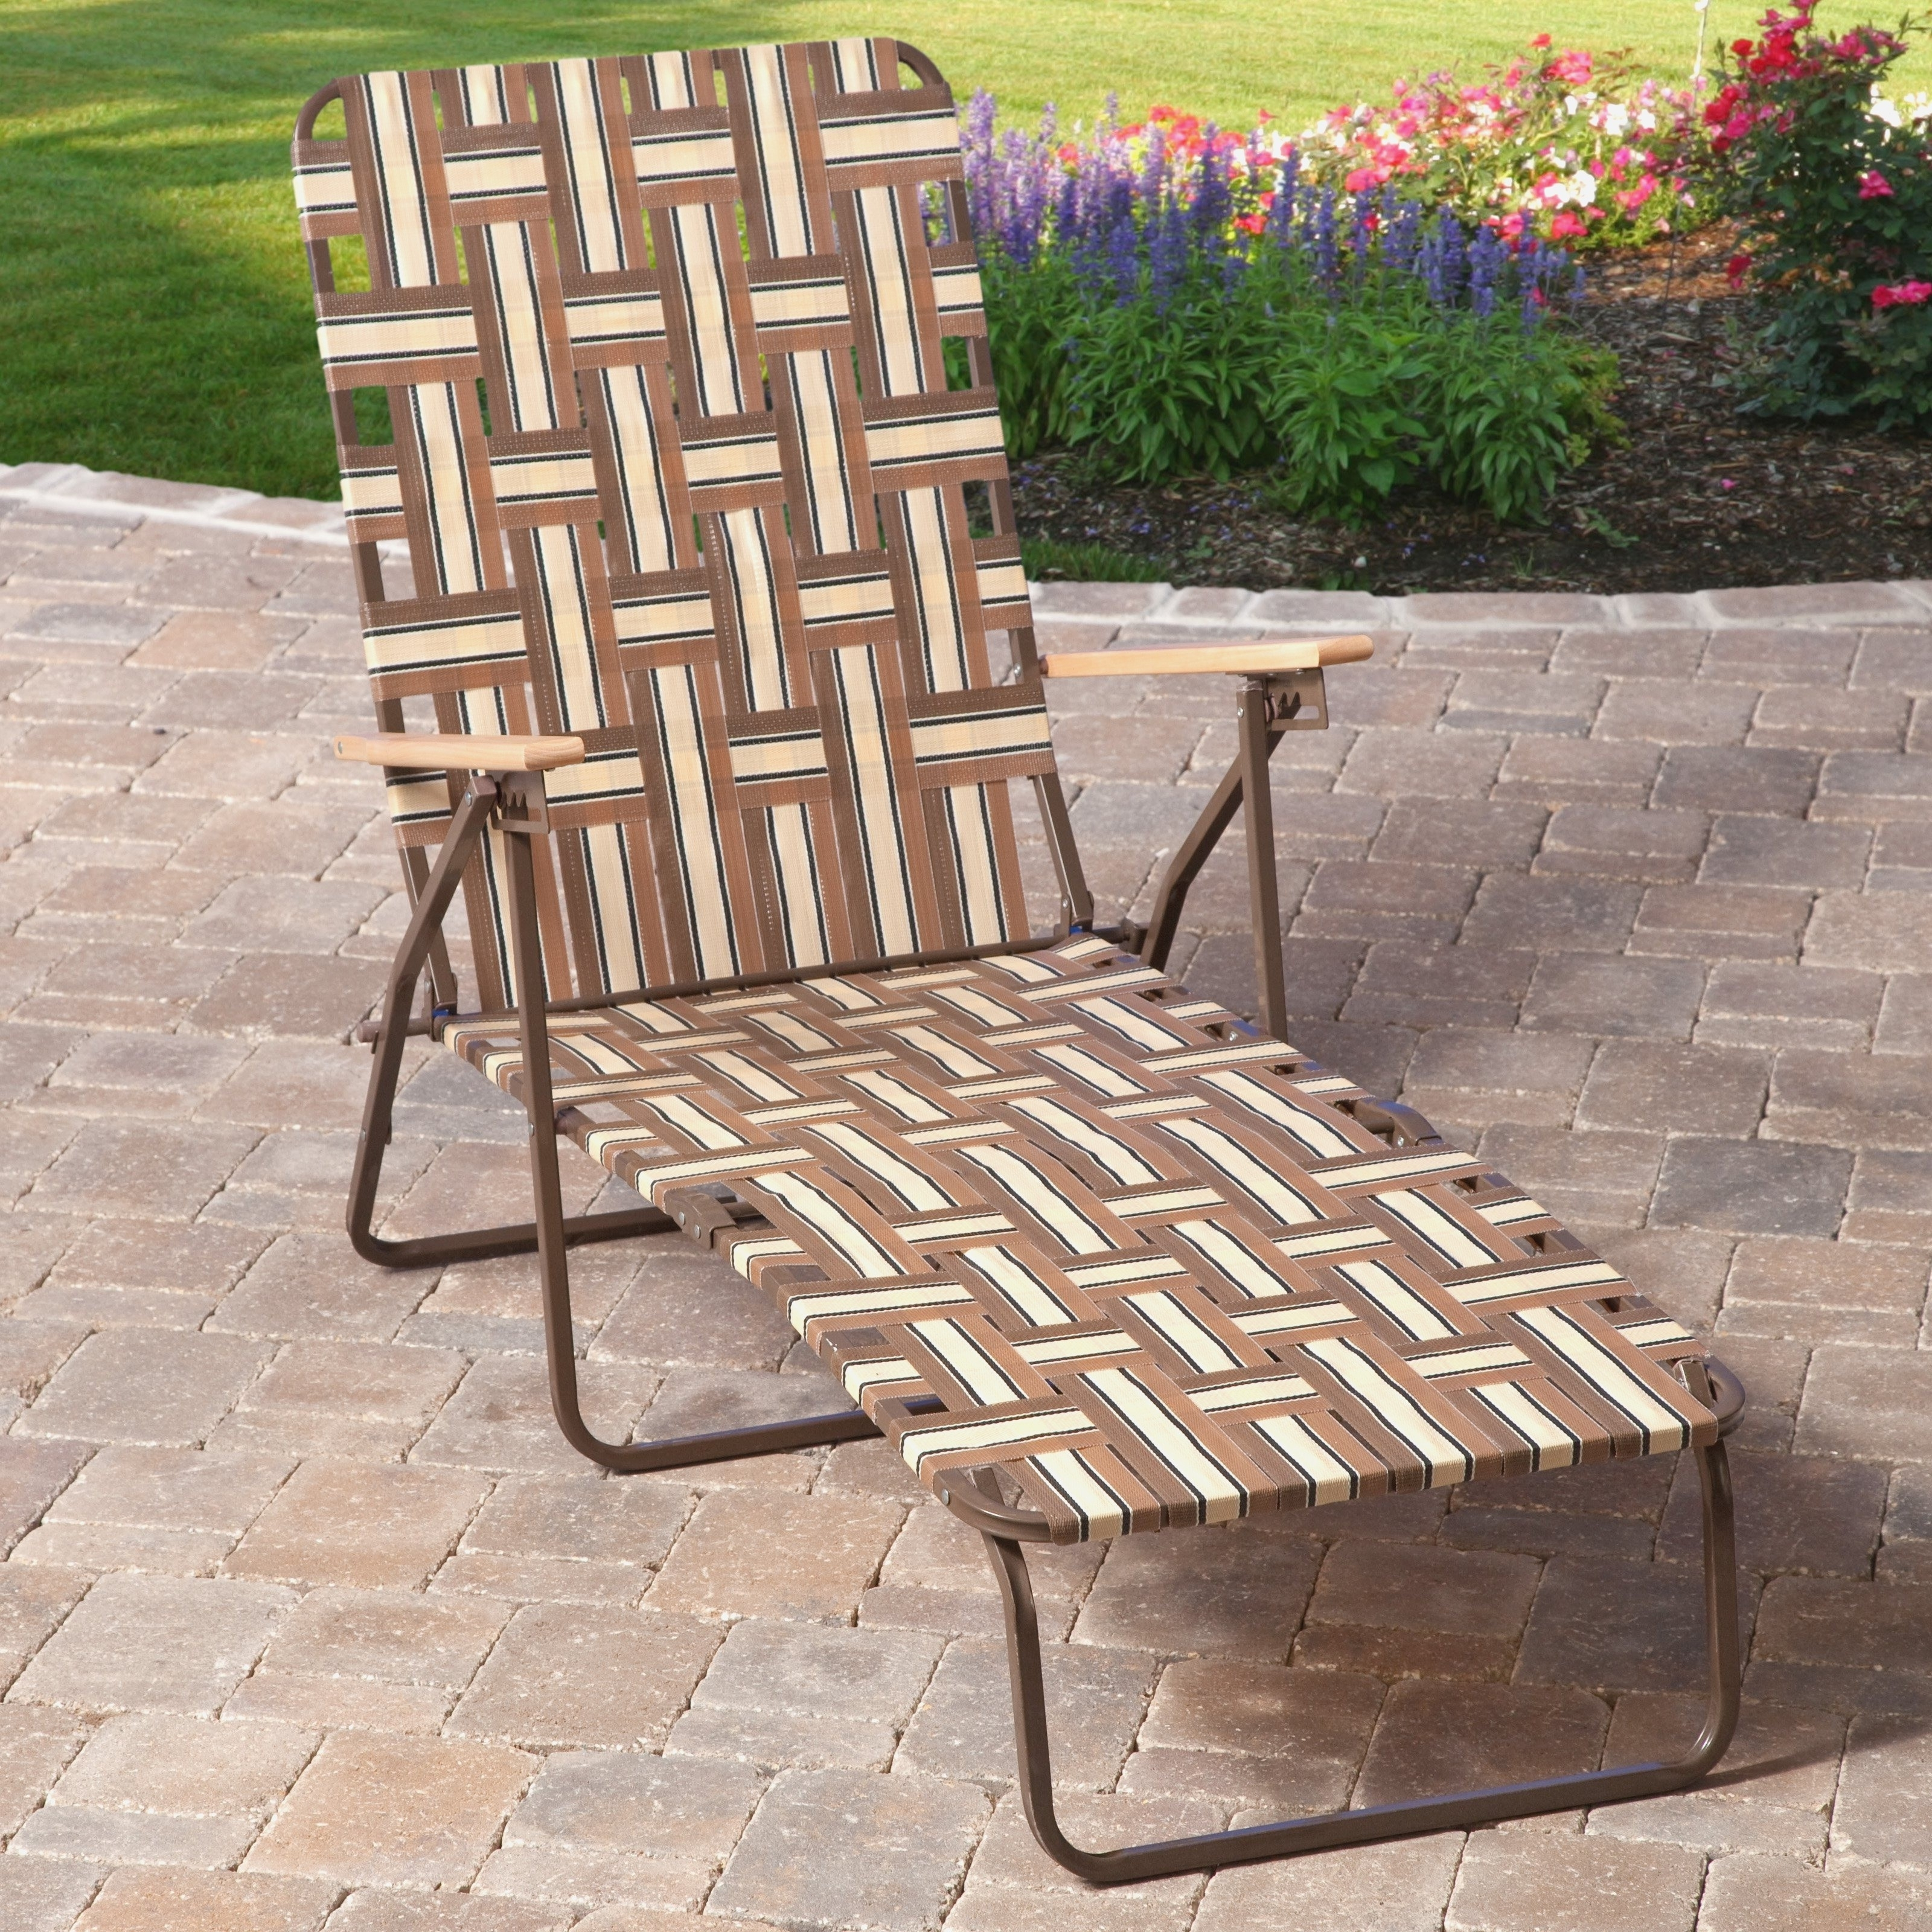 Restrapping Patio Chairs Beautiful Vinyl Restrapping Your Atlanta Throughout Most Current Atlanta Chaise Lounge Chairs (View 11 of 15)